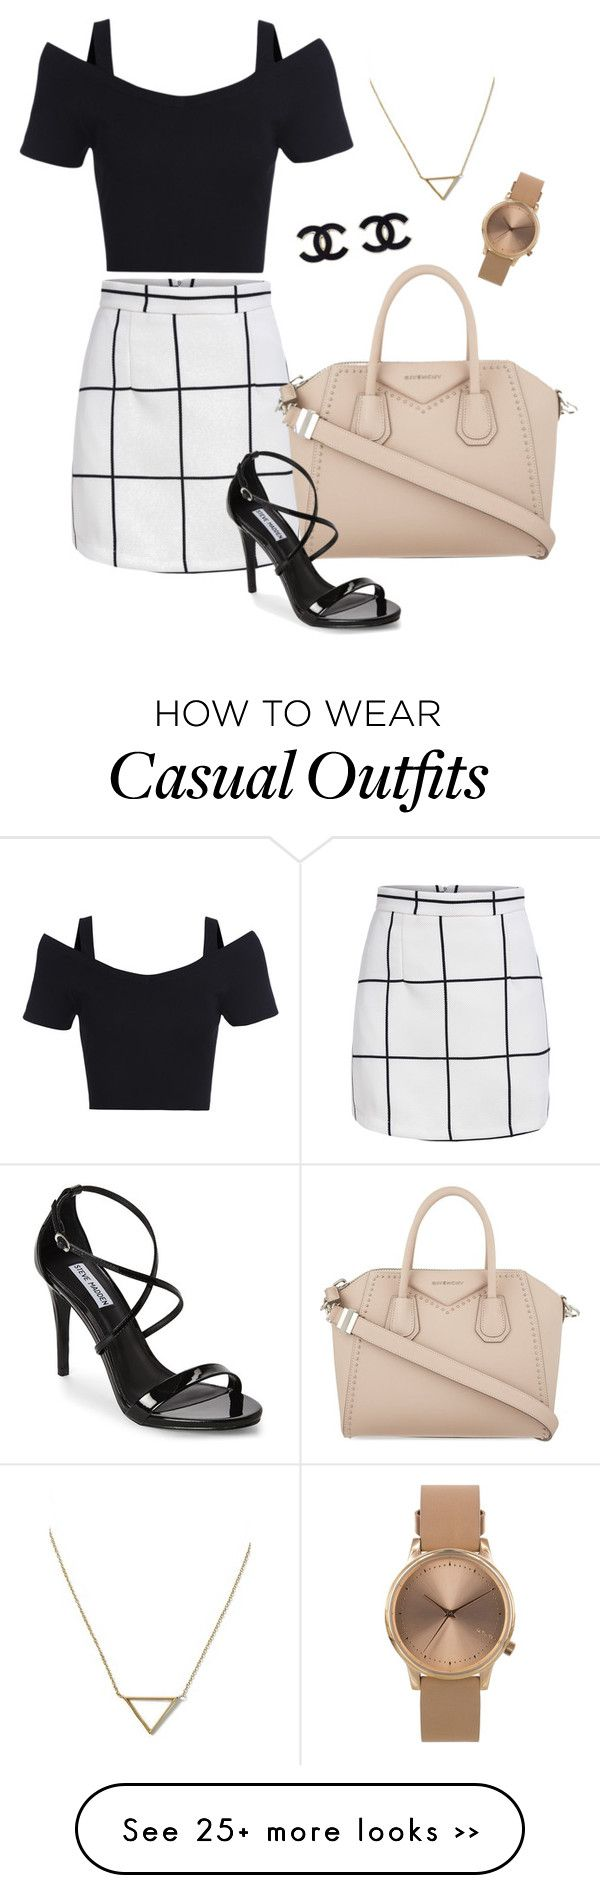 """""""#casual dinner"""" by daphnewynn on Polyvore featuring Givenchy, Steve Madden, Banana Republic and Topshop"""